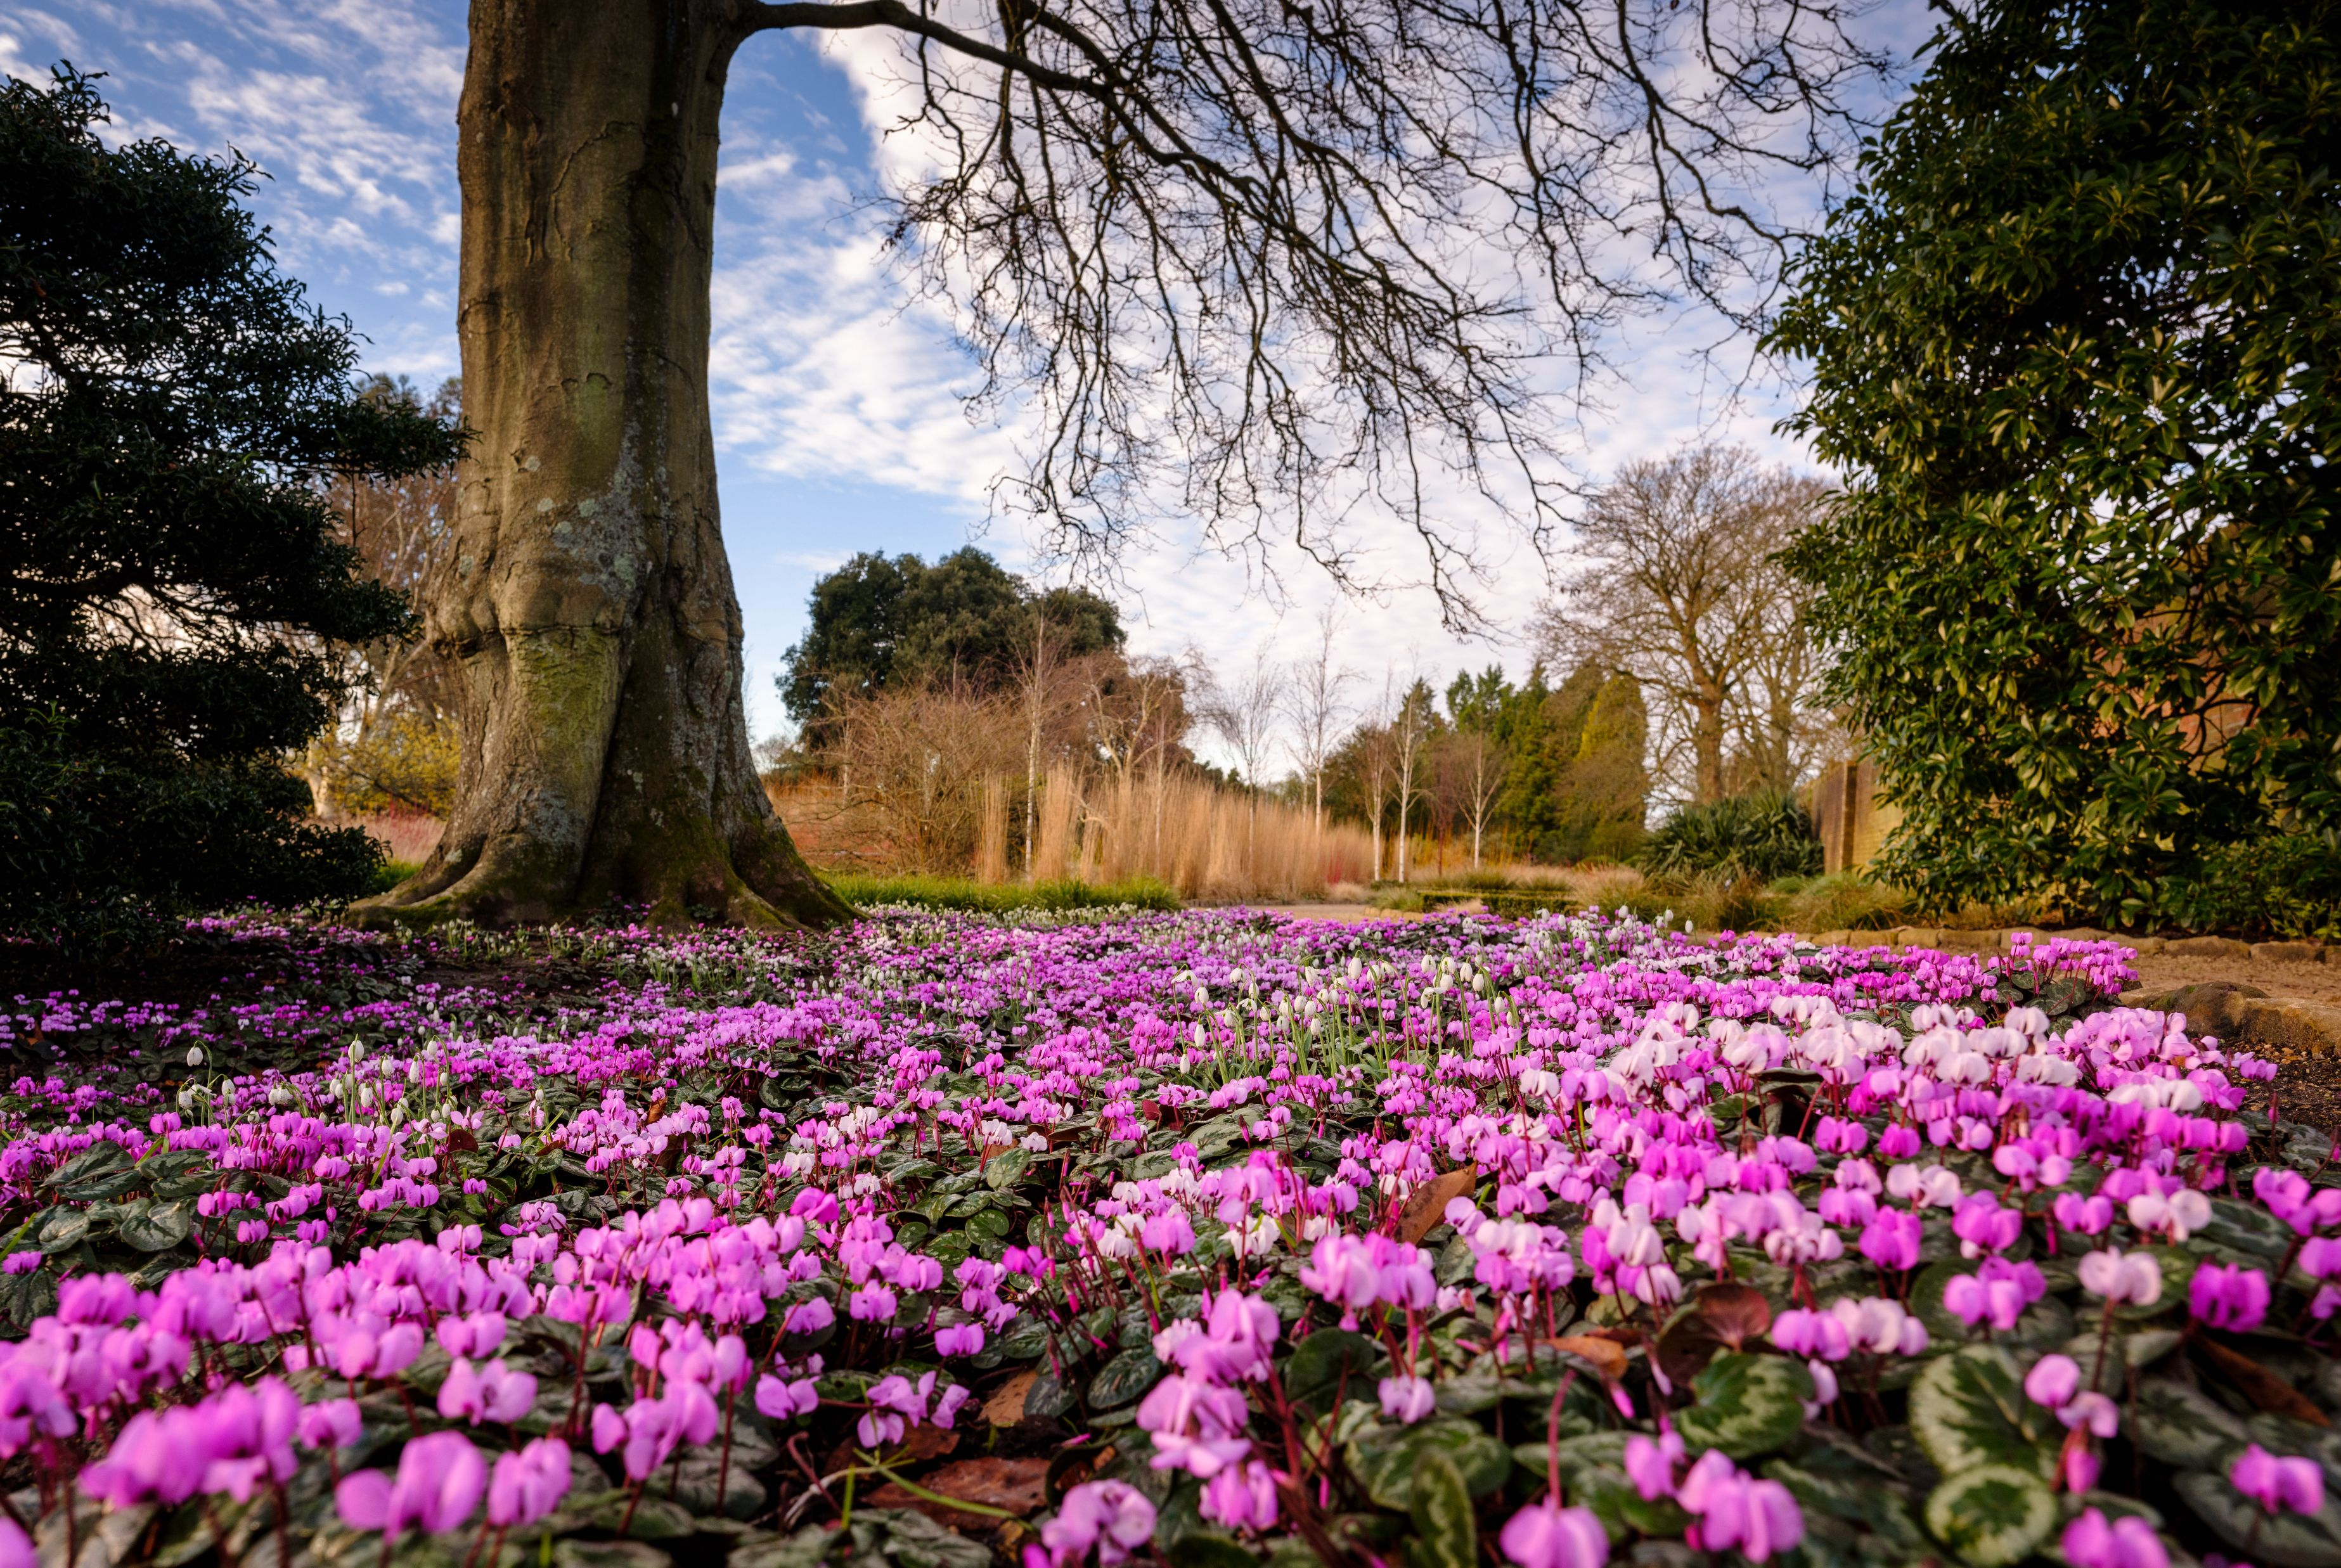 Cyclamen in the Winter Garden at Wakehurst